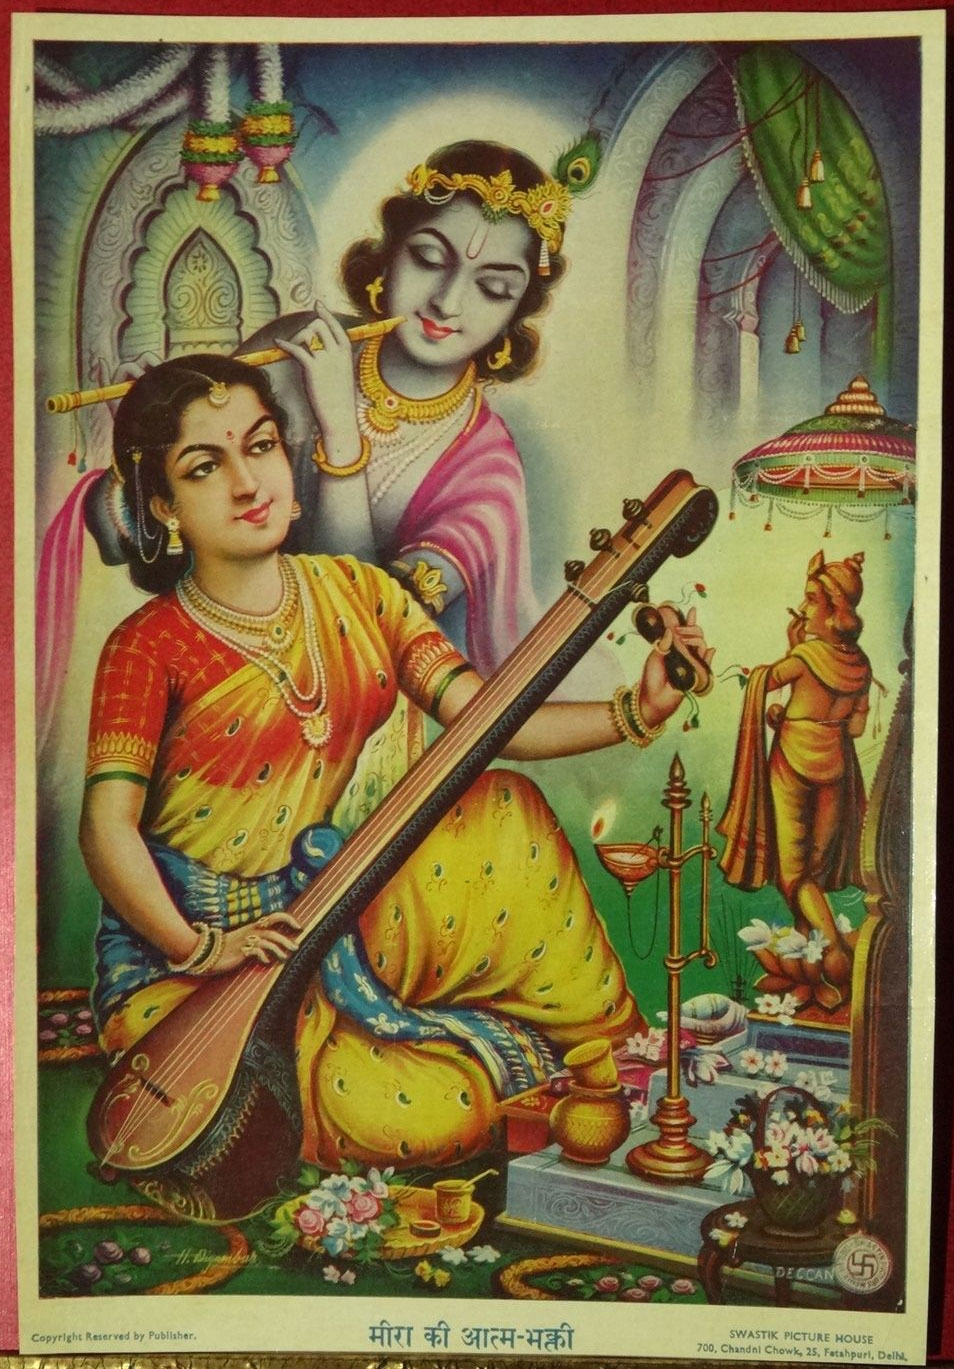 Meera's Devotion to Krishna - Vintage Print, India 1930's